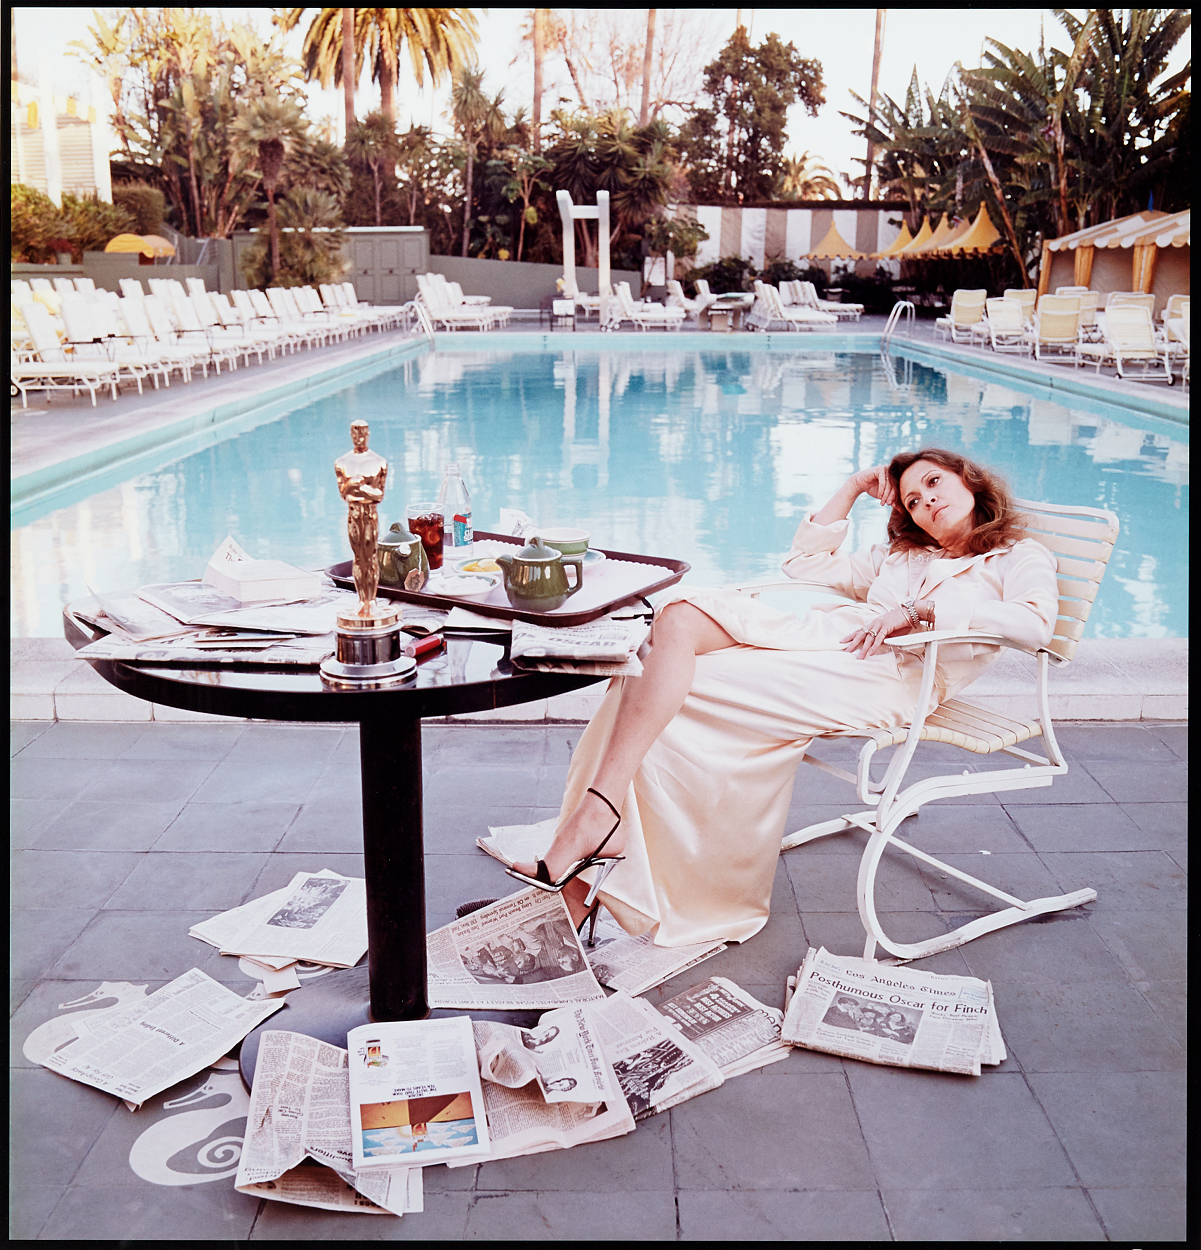 Terry O'Neill, Faye Dunaway, Hollywood 1977